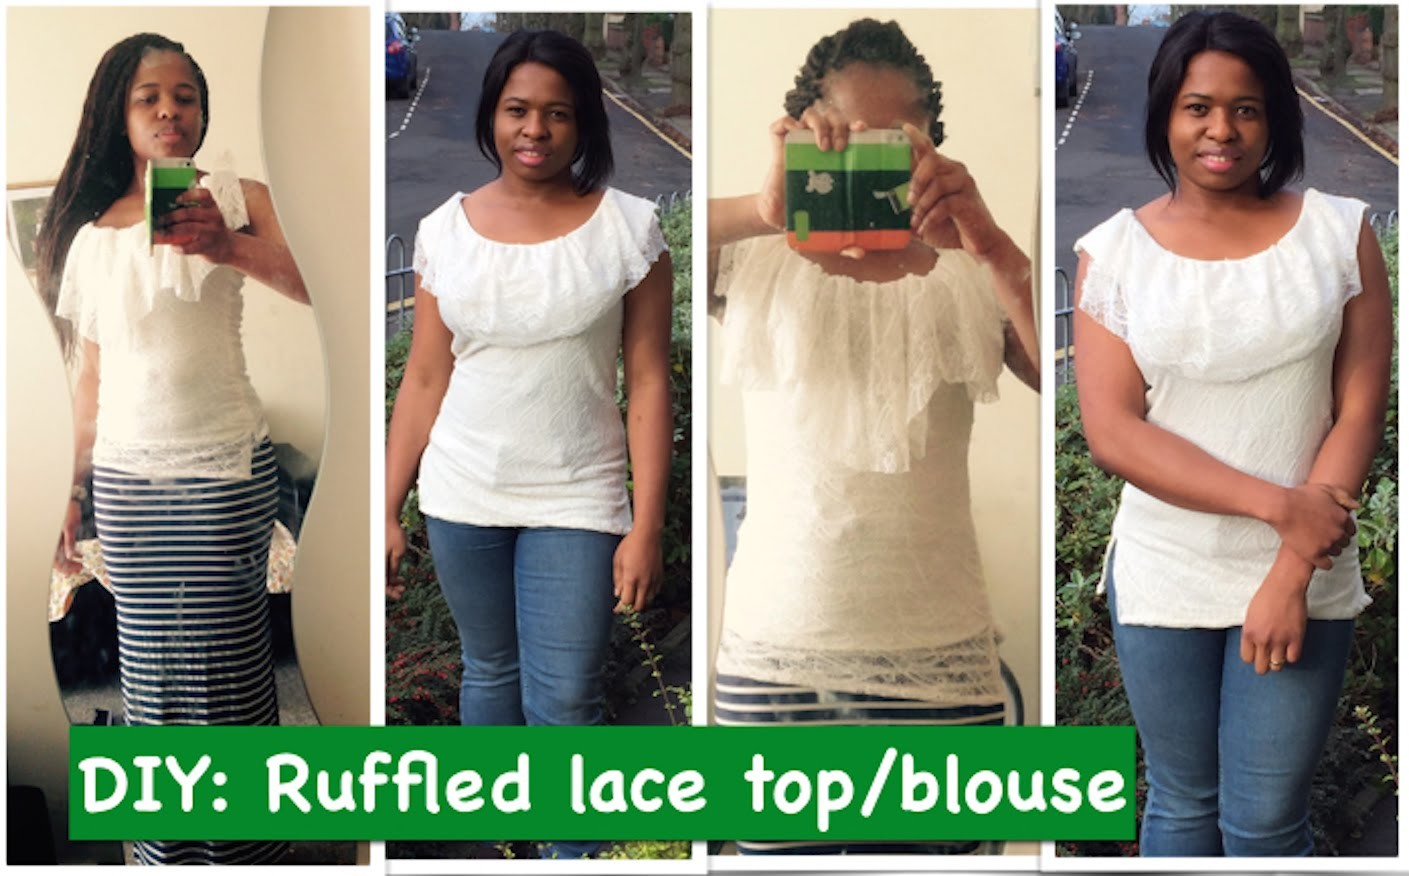 DIY: Lace top.blouse with ruffles